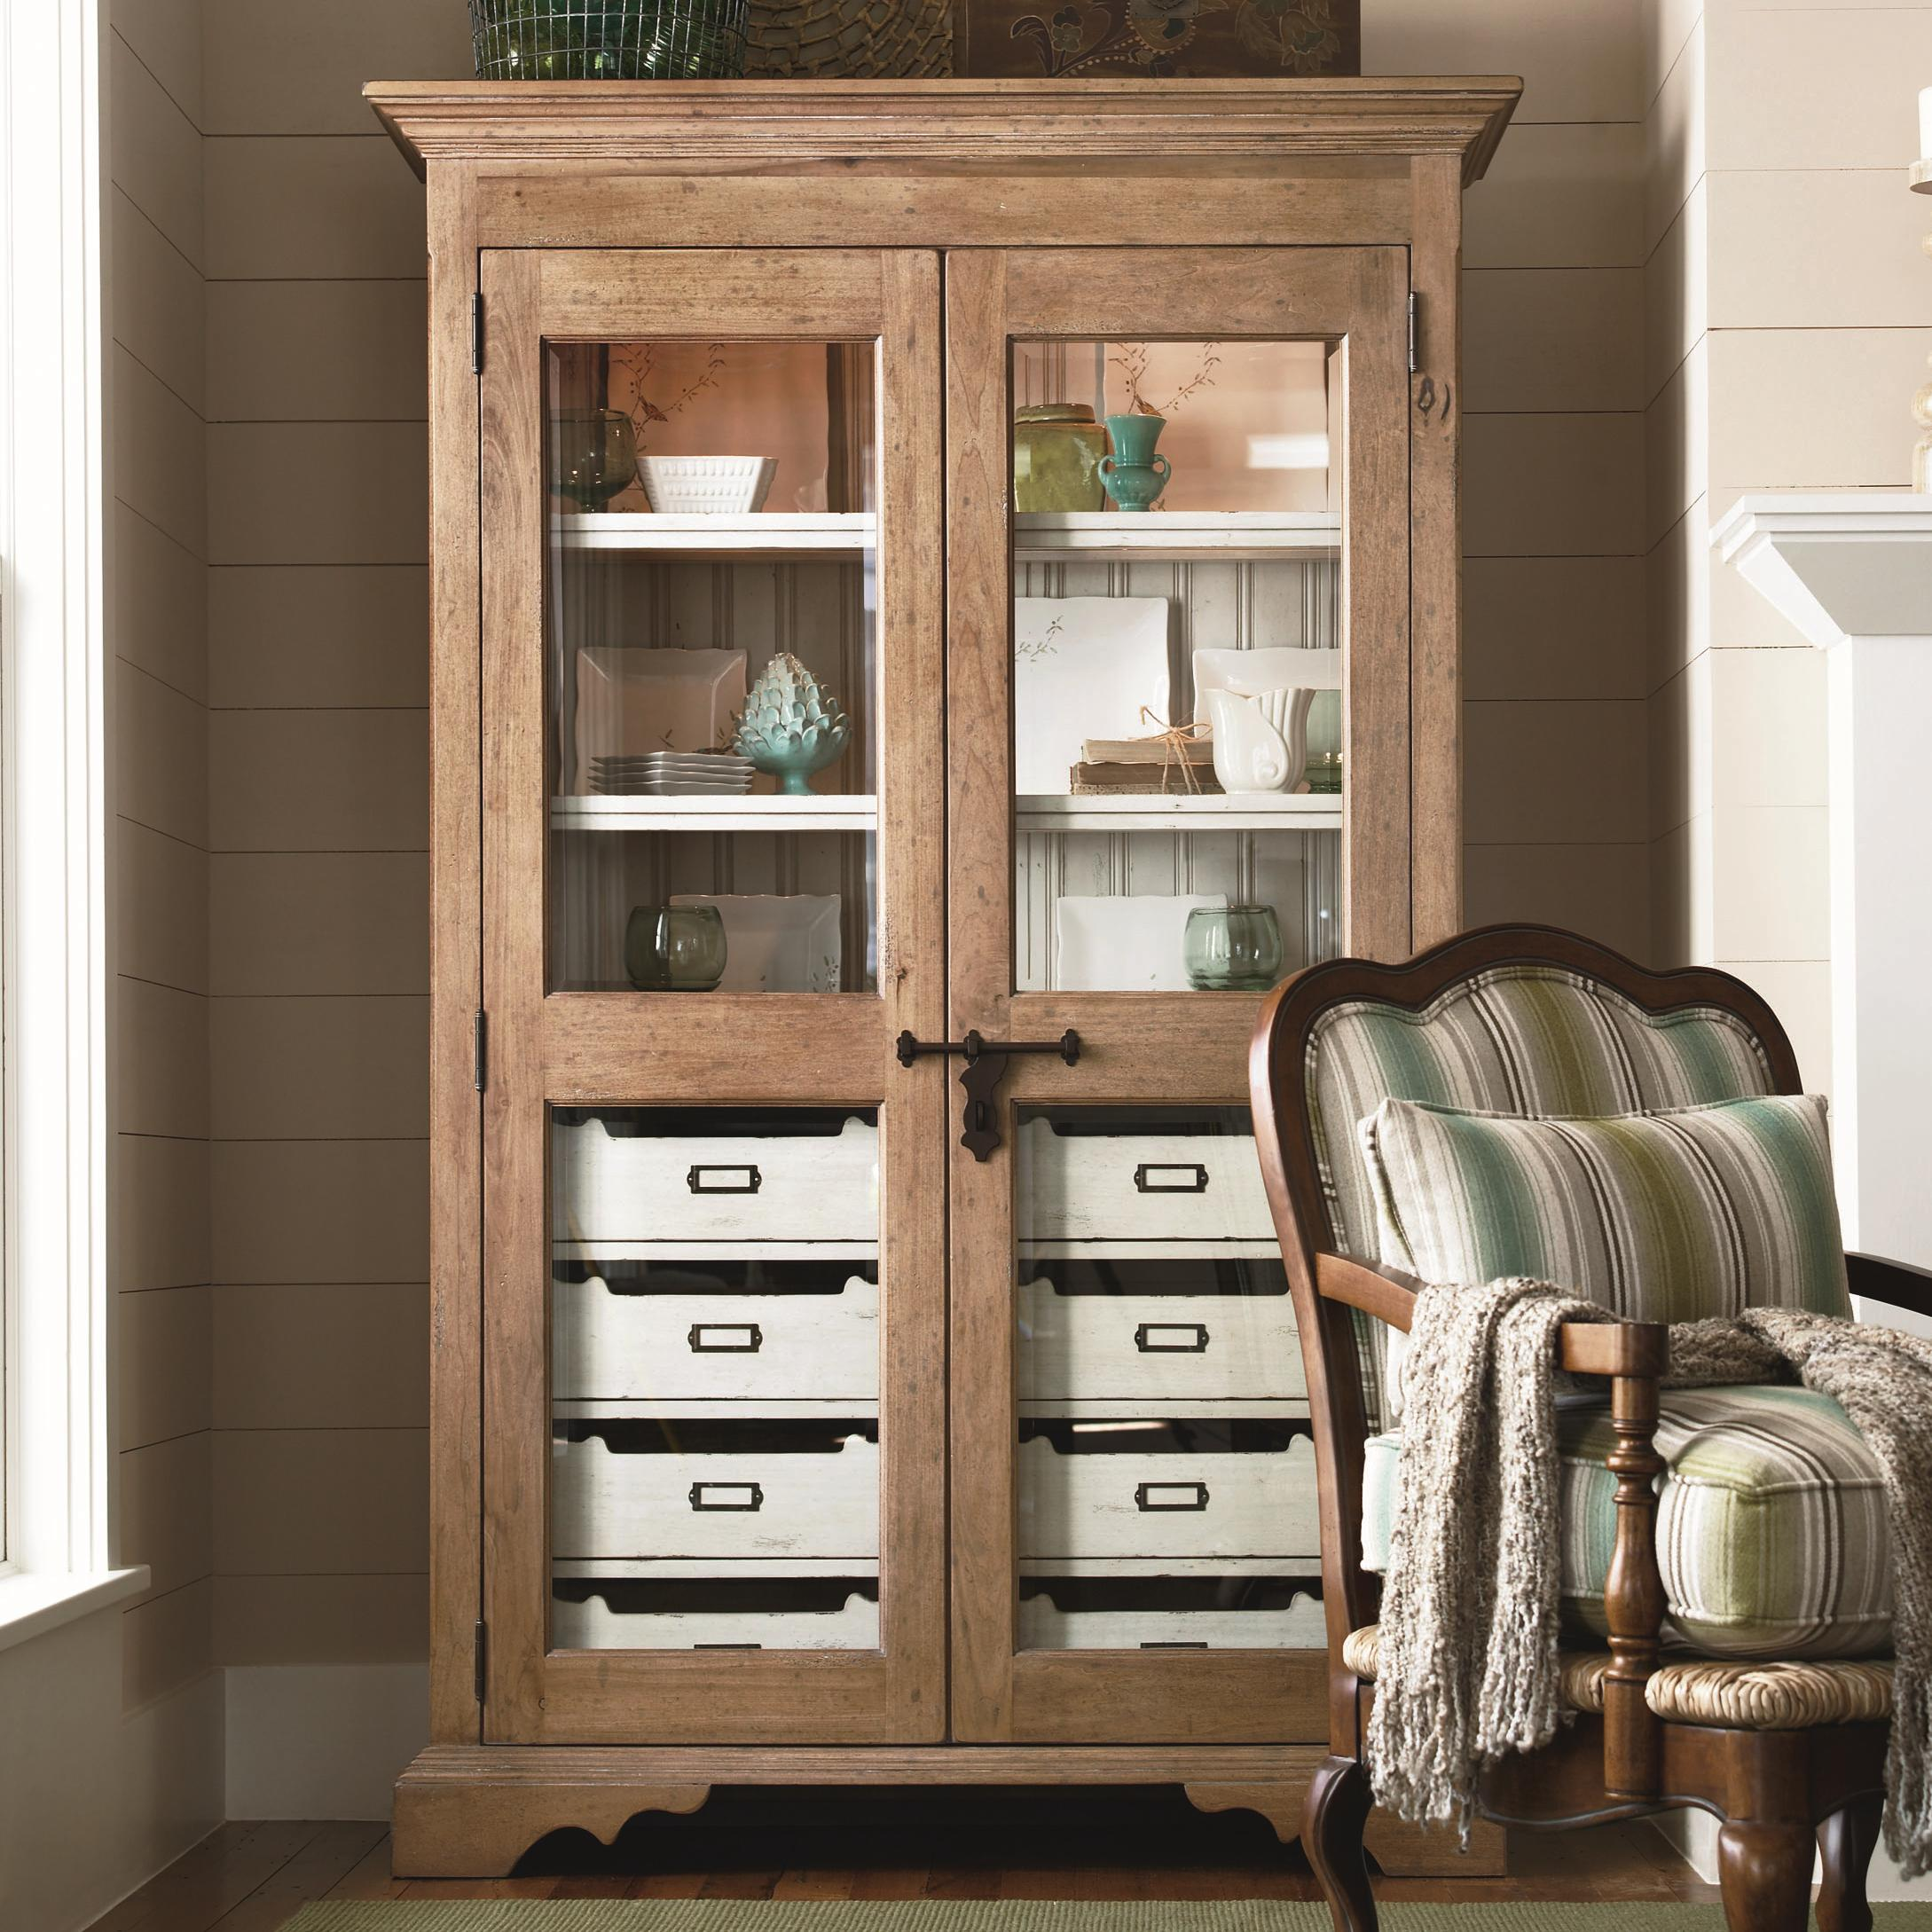 down home 192678 b - 15 Ugly Truth About Dish Pantry Cabinet